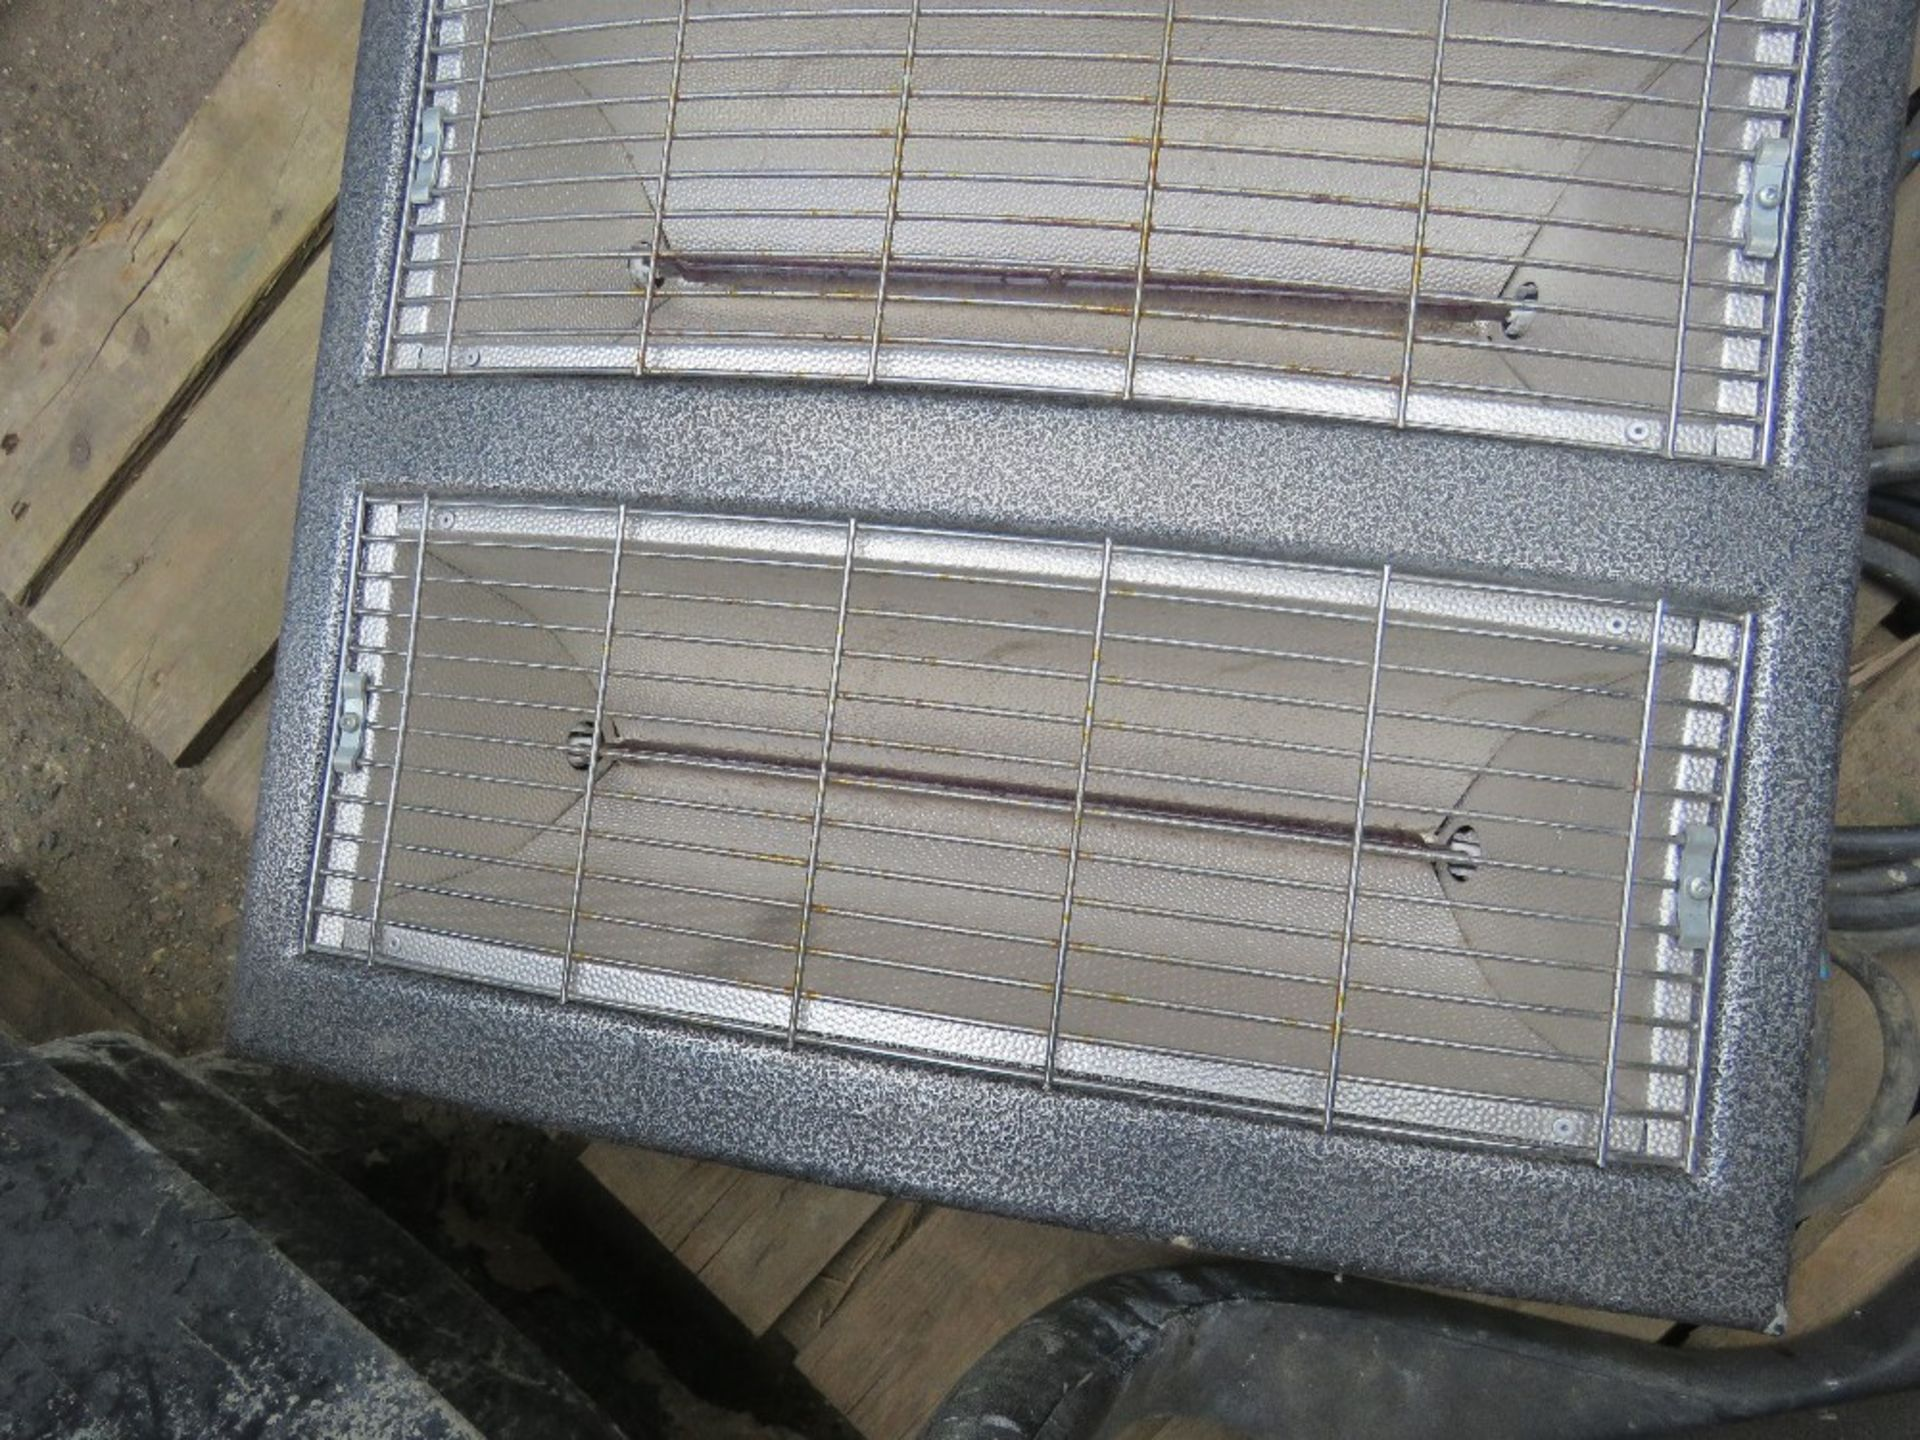 2 X RADIANT HEATERS. - Image 2 of 2